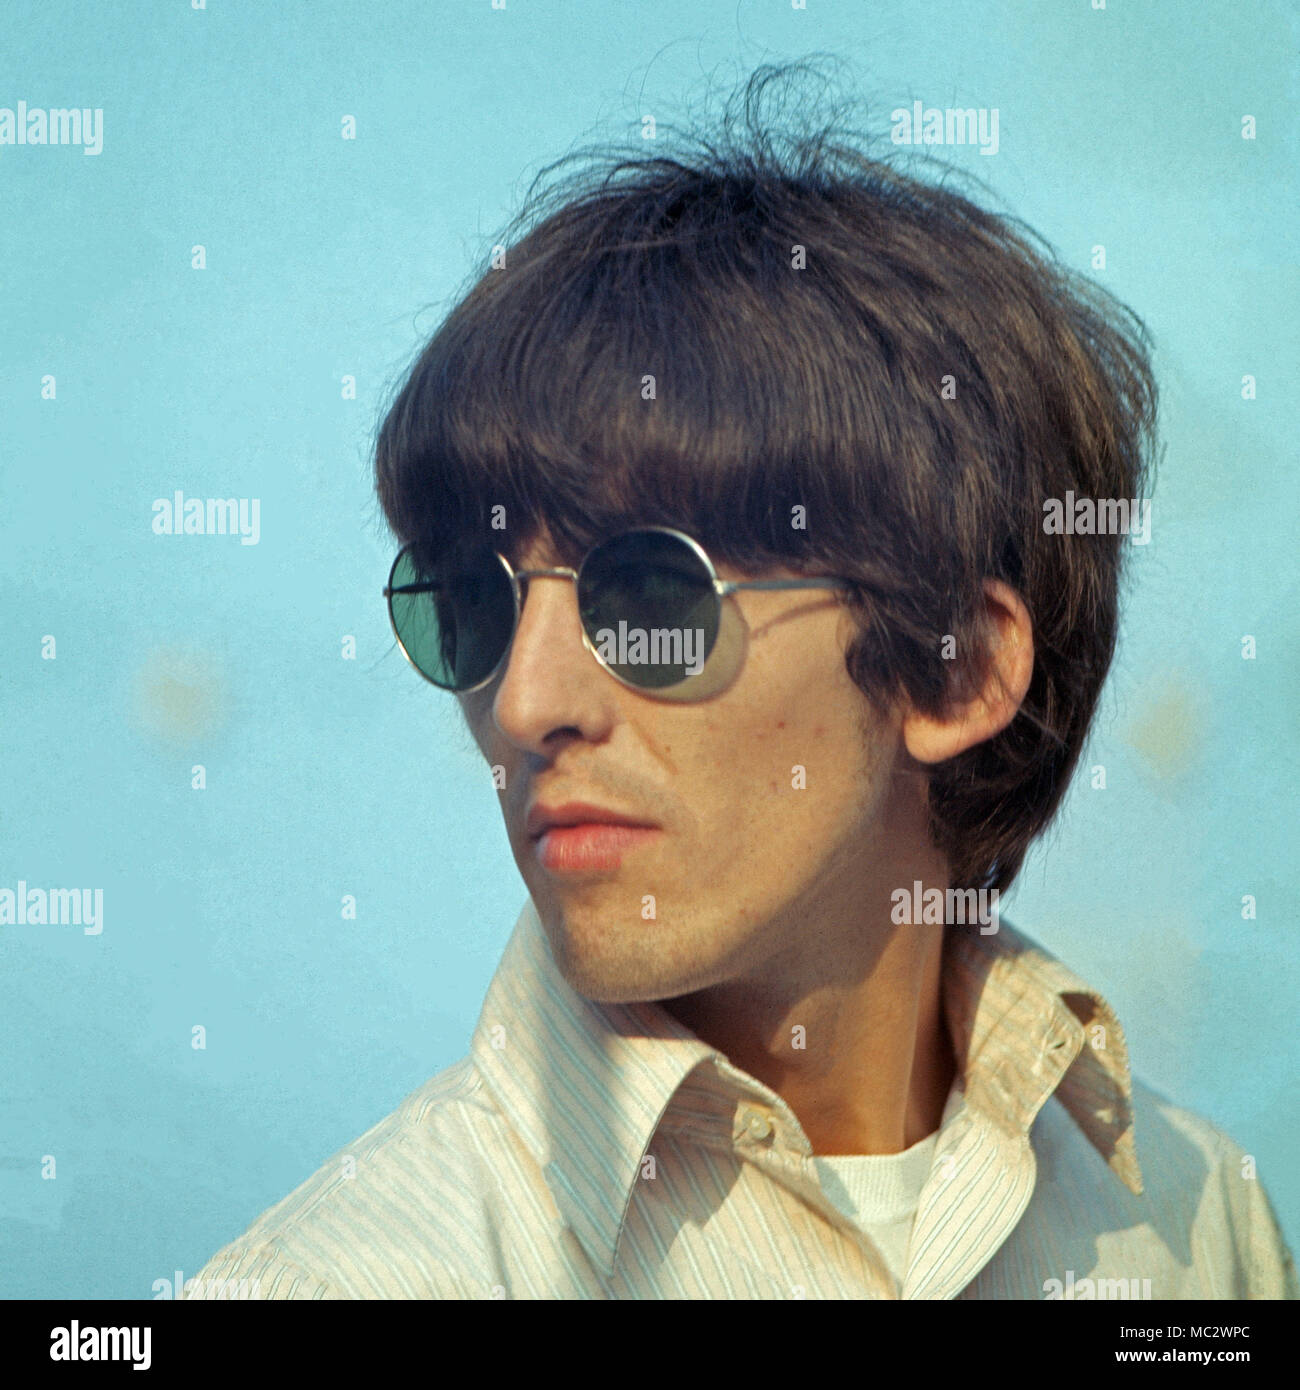 Beatle George Harrison zu Besuch in Monte Carlo, Monaco 1966. Beatle George Harrison visiting Monte Carlo, Monaco 1966. Stock Photo